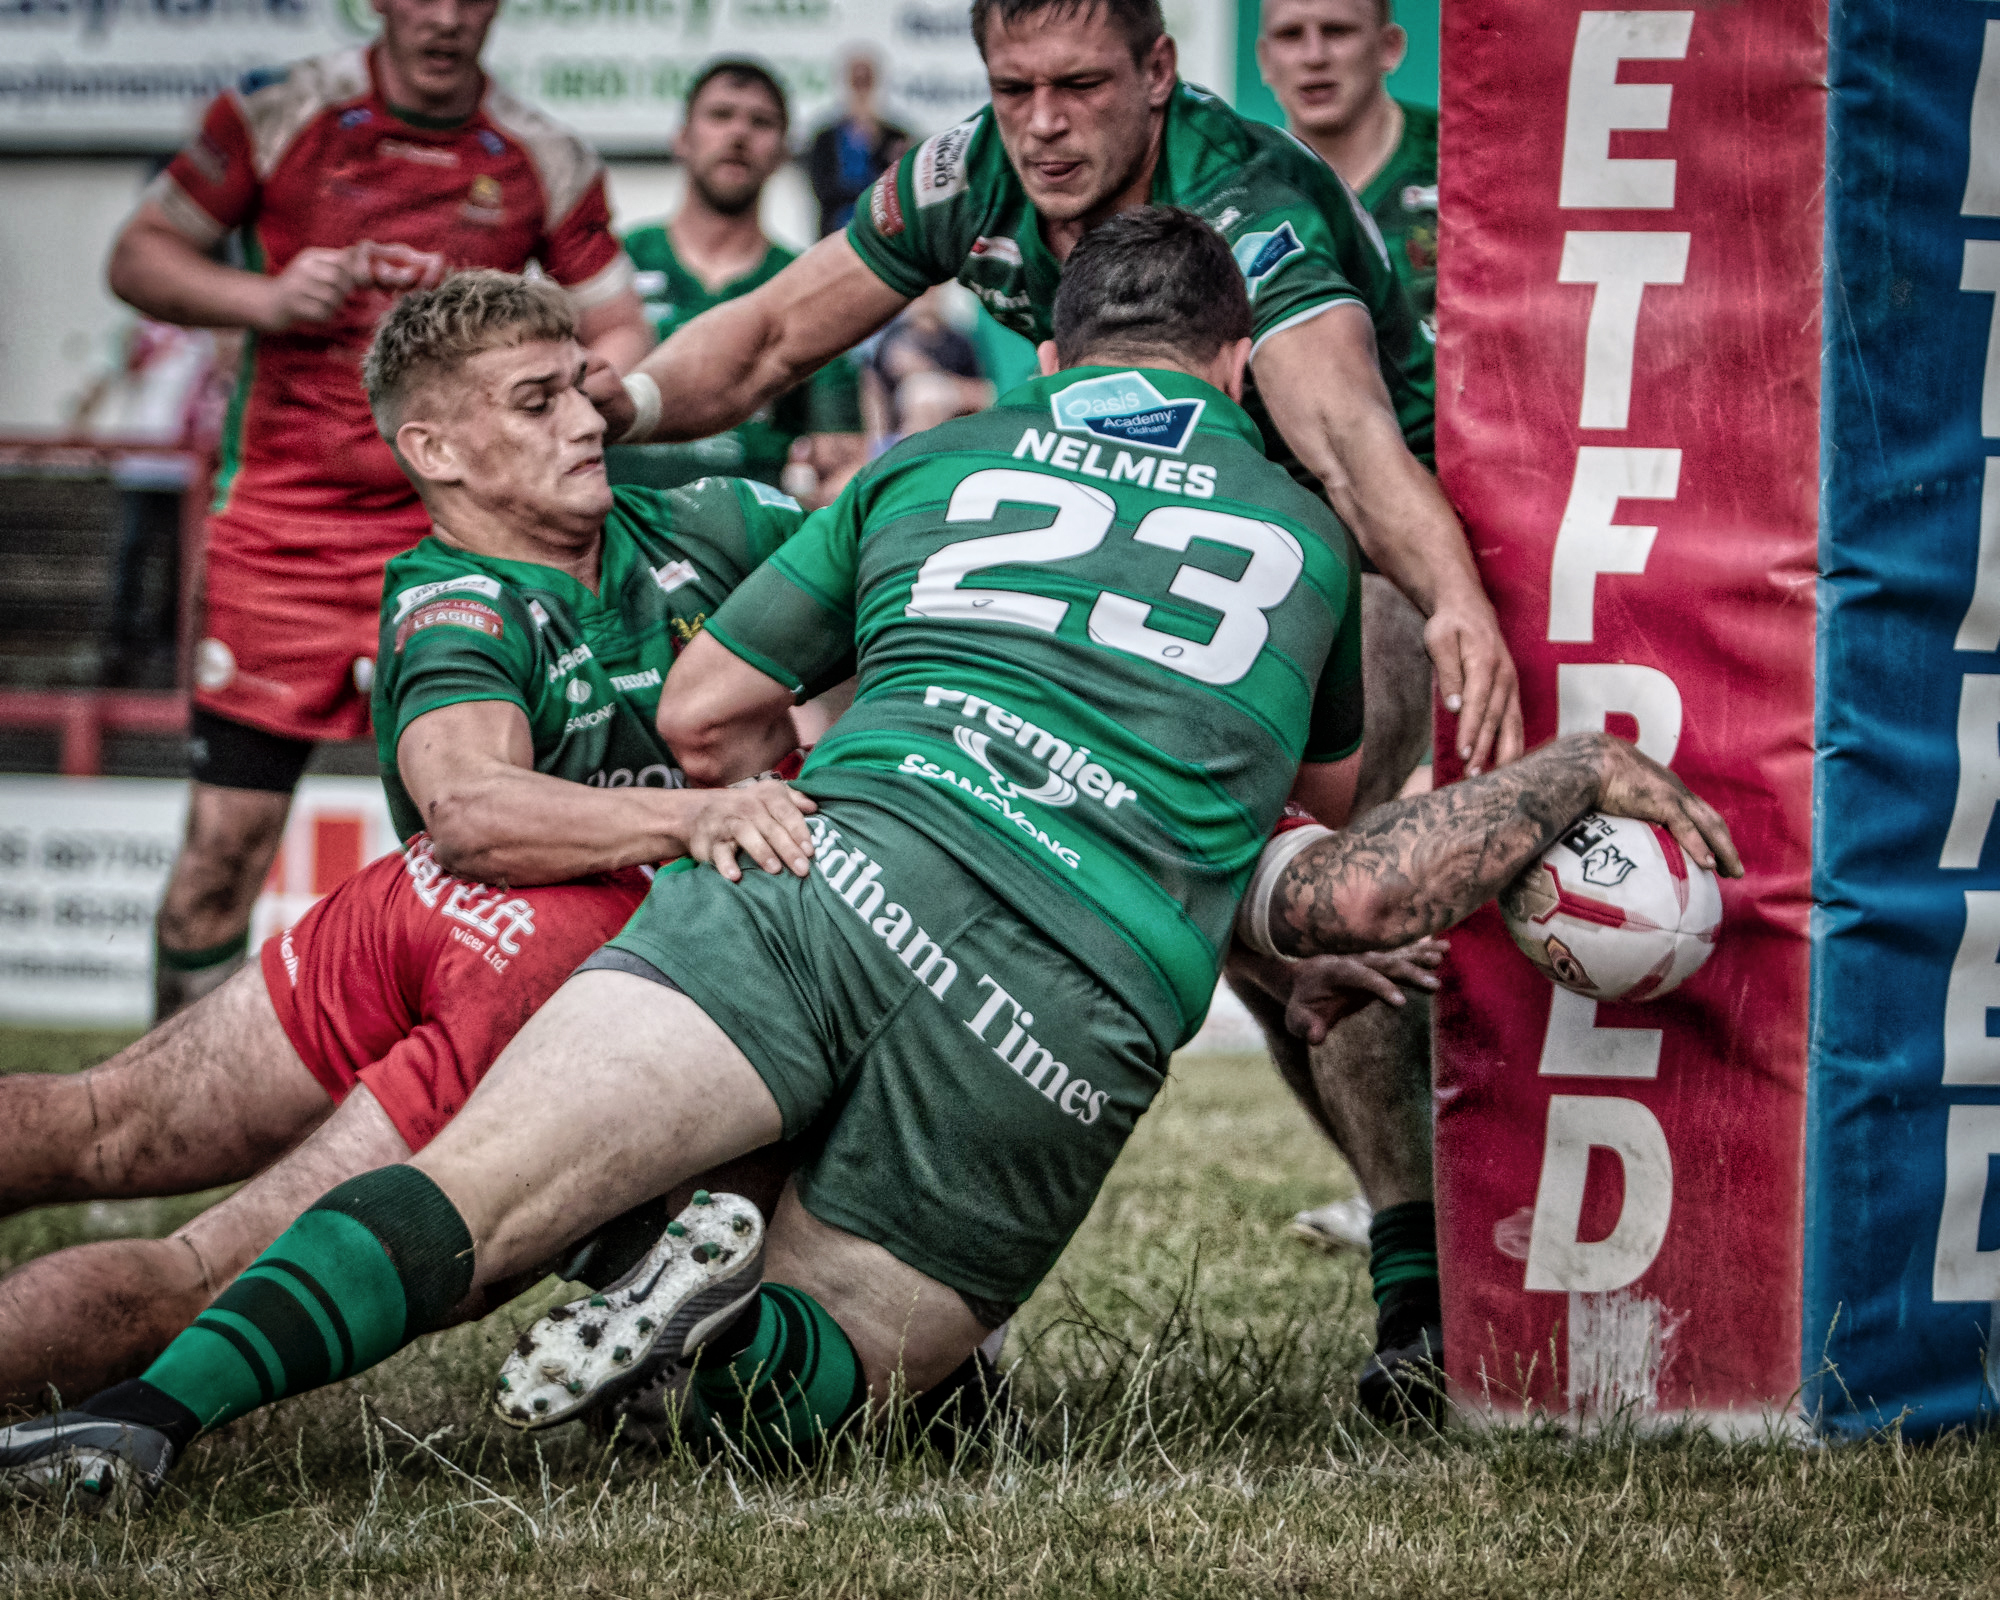 Cougars' try in three pictures: an arm reaches beyond the defenders…